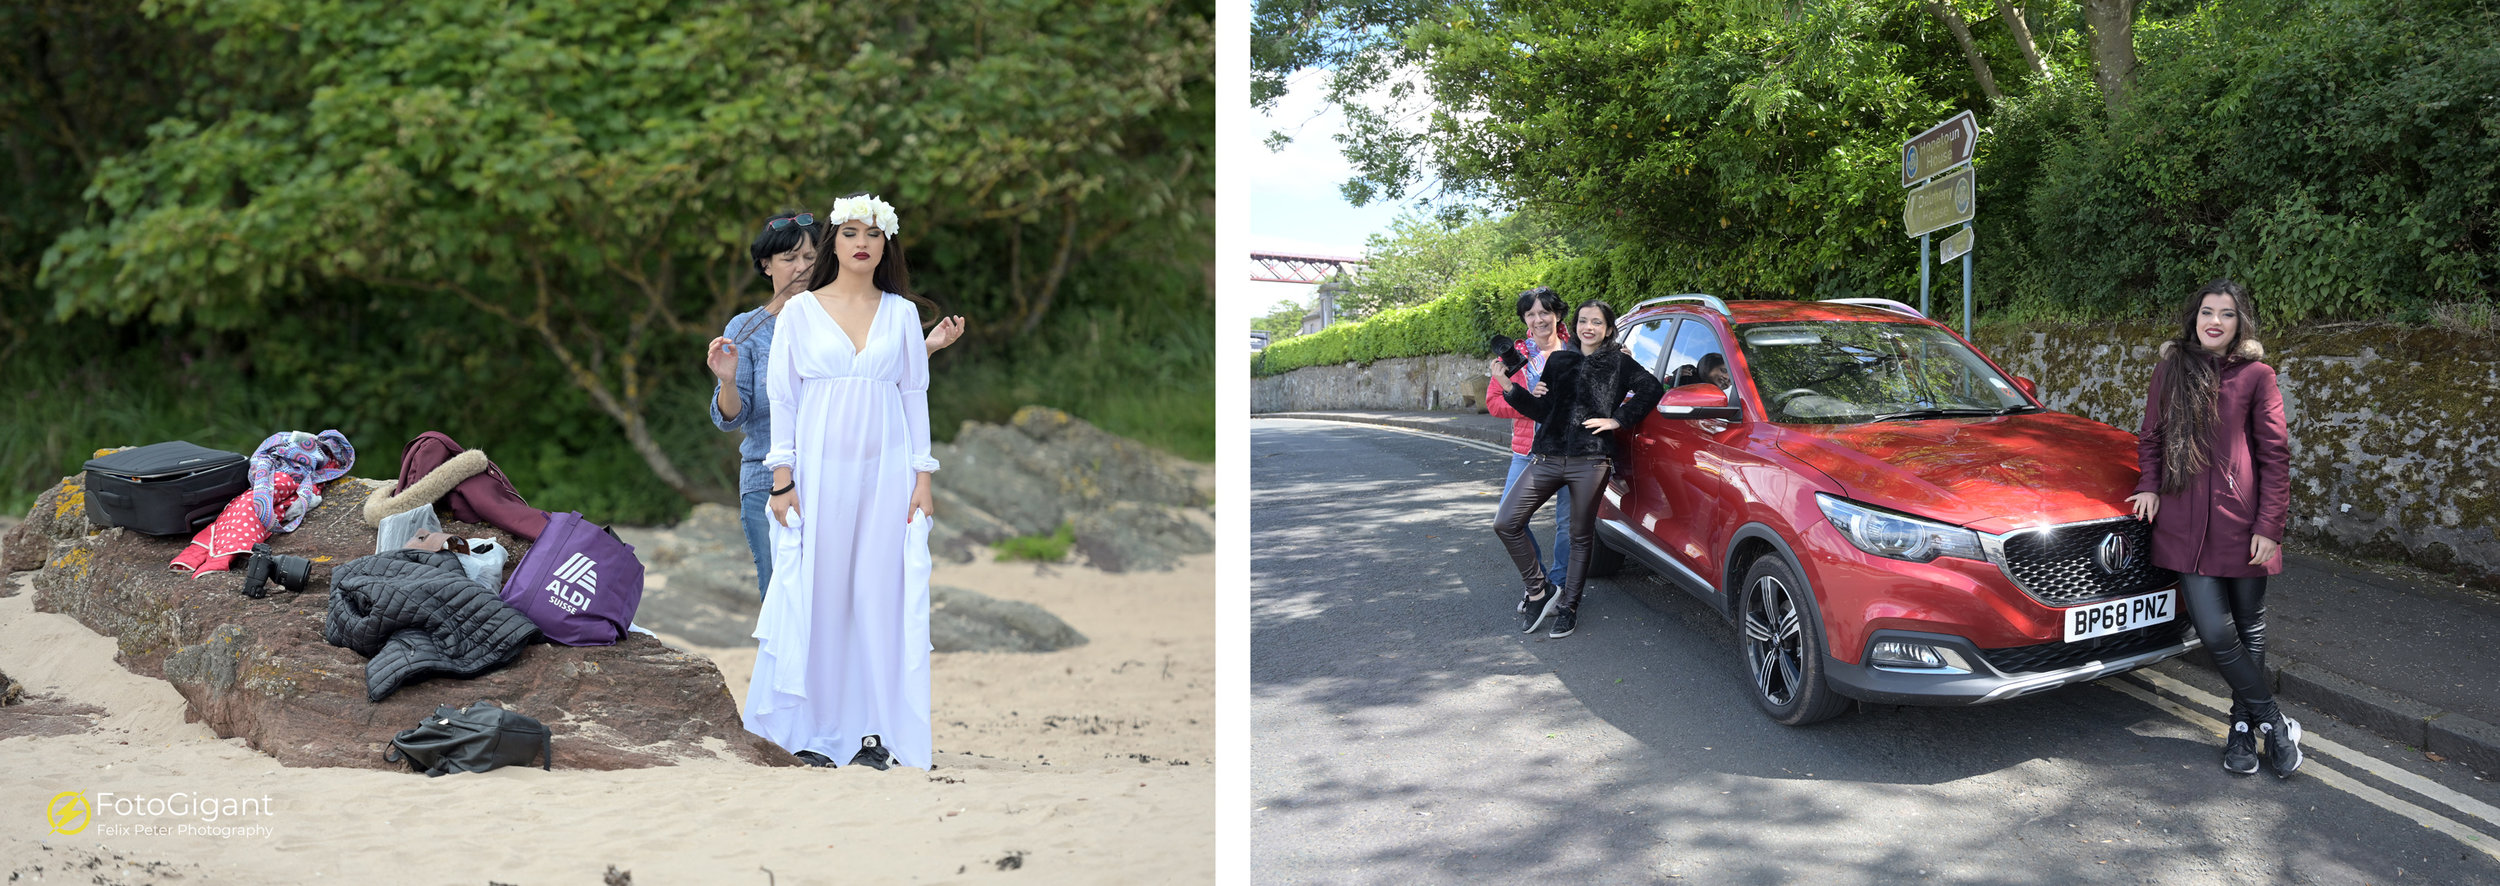 Behind the Scene at Beach Tantallon and later on driving to Forth Bridge with our MG :-)